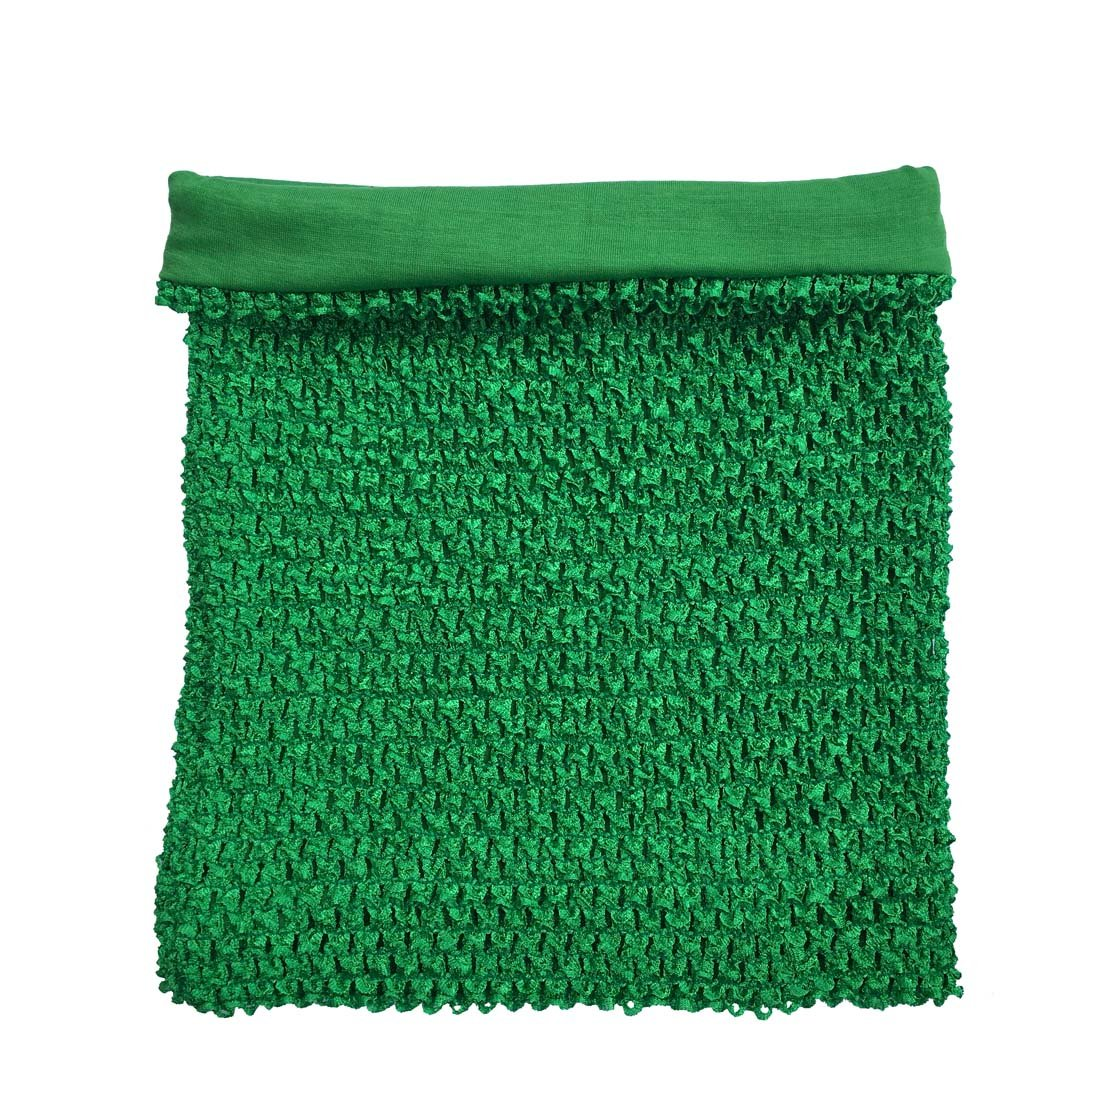 Amazon Green Crochet Tutu Top Lined 12 Inches X 10 Inches